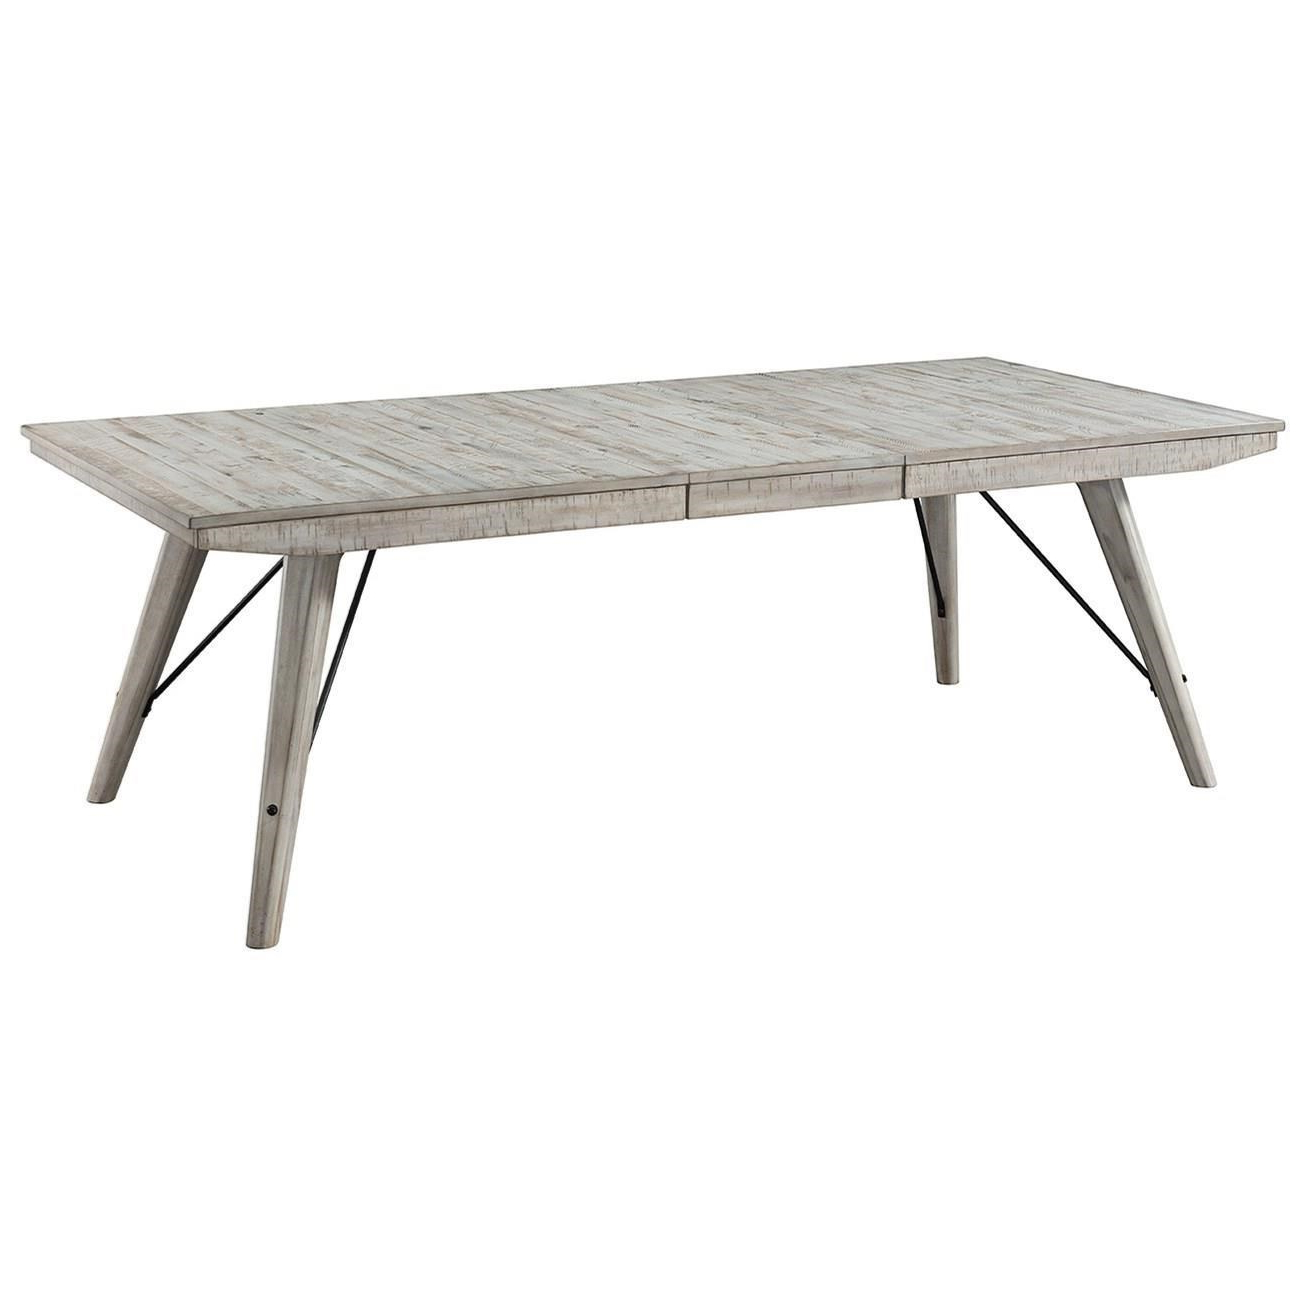 Widely Used Intercon Modern Rustic Contemporary Rectangular Dining Table Throughout Contemporary Rectangular Dining Tables (View 25 of 25)